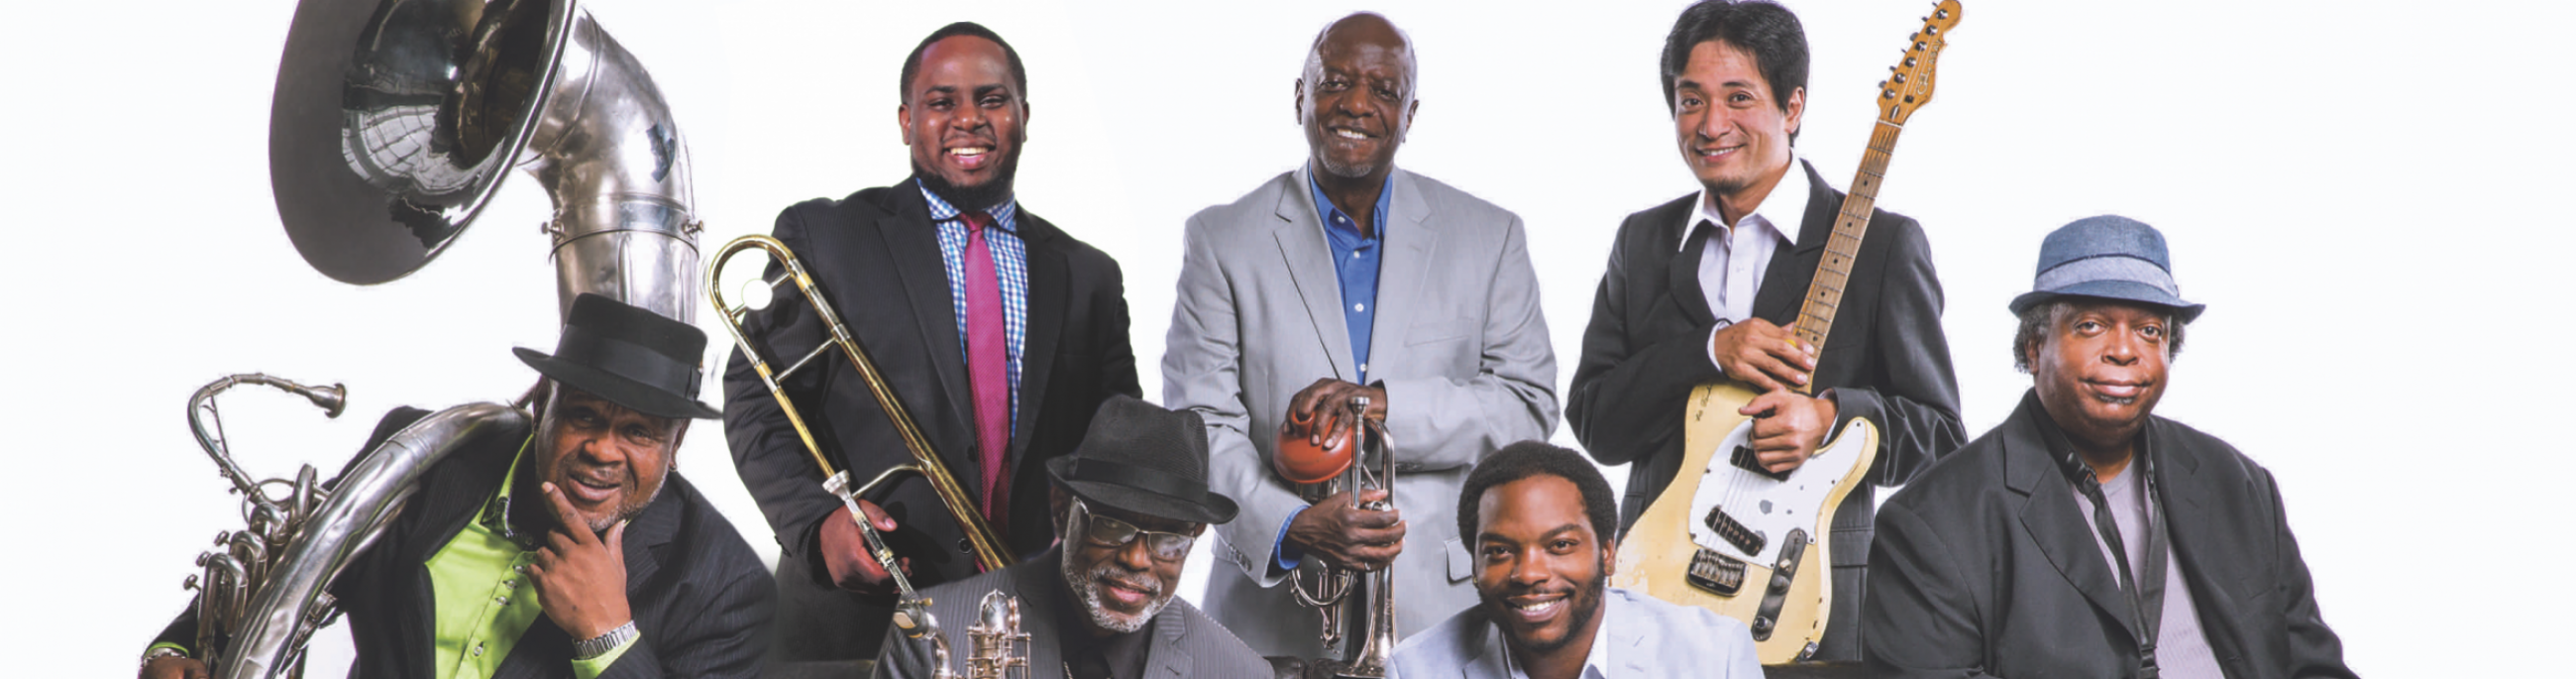 Dirty Dozen Brass Band, part of Take Me to the River - NOLA Live!